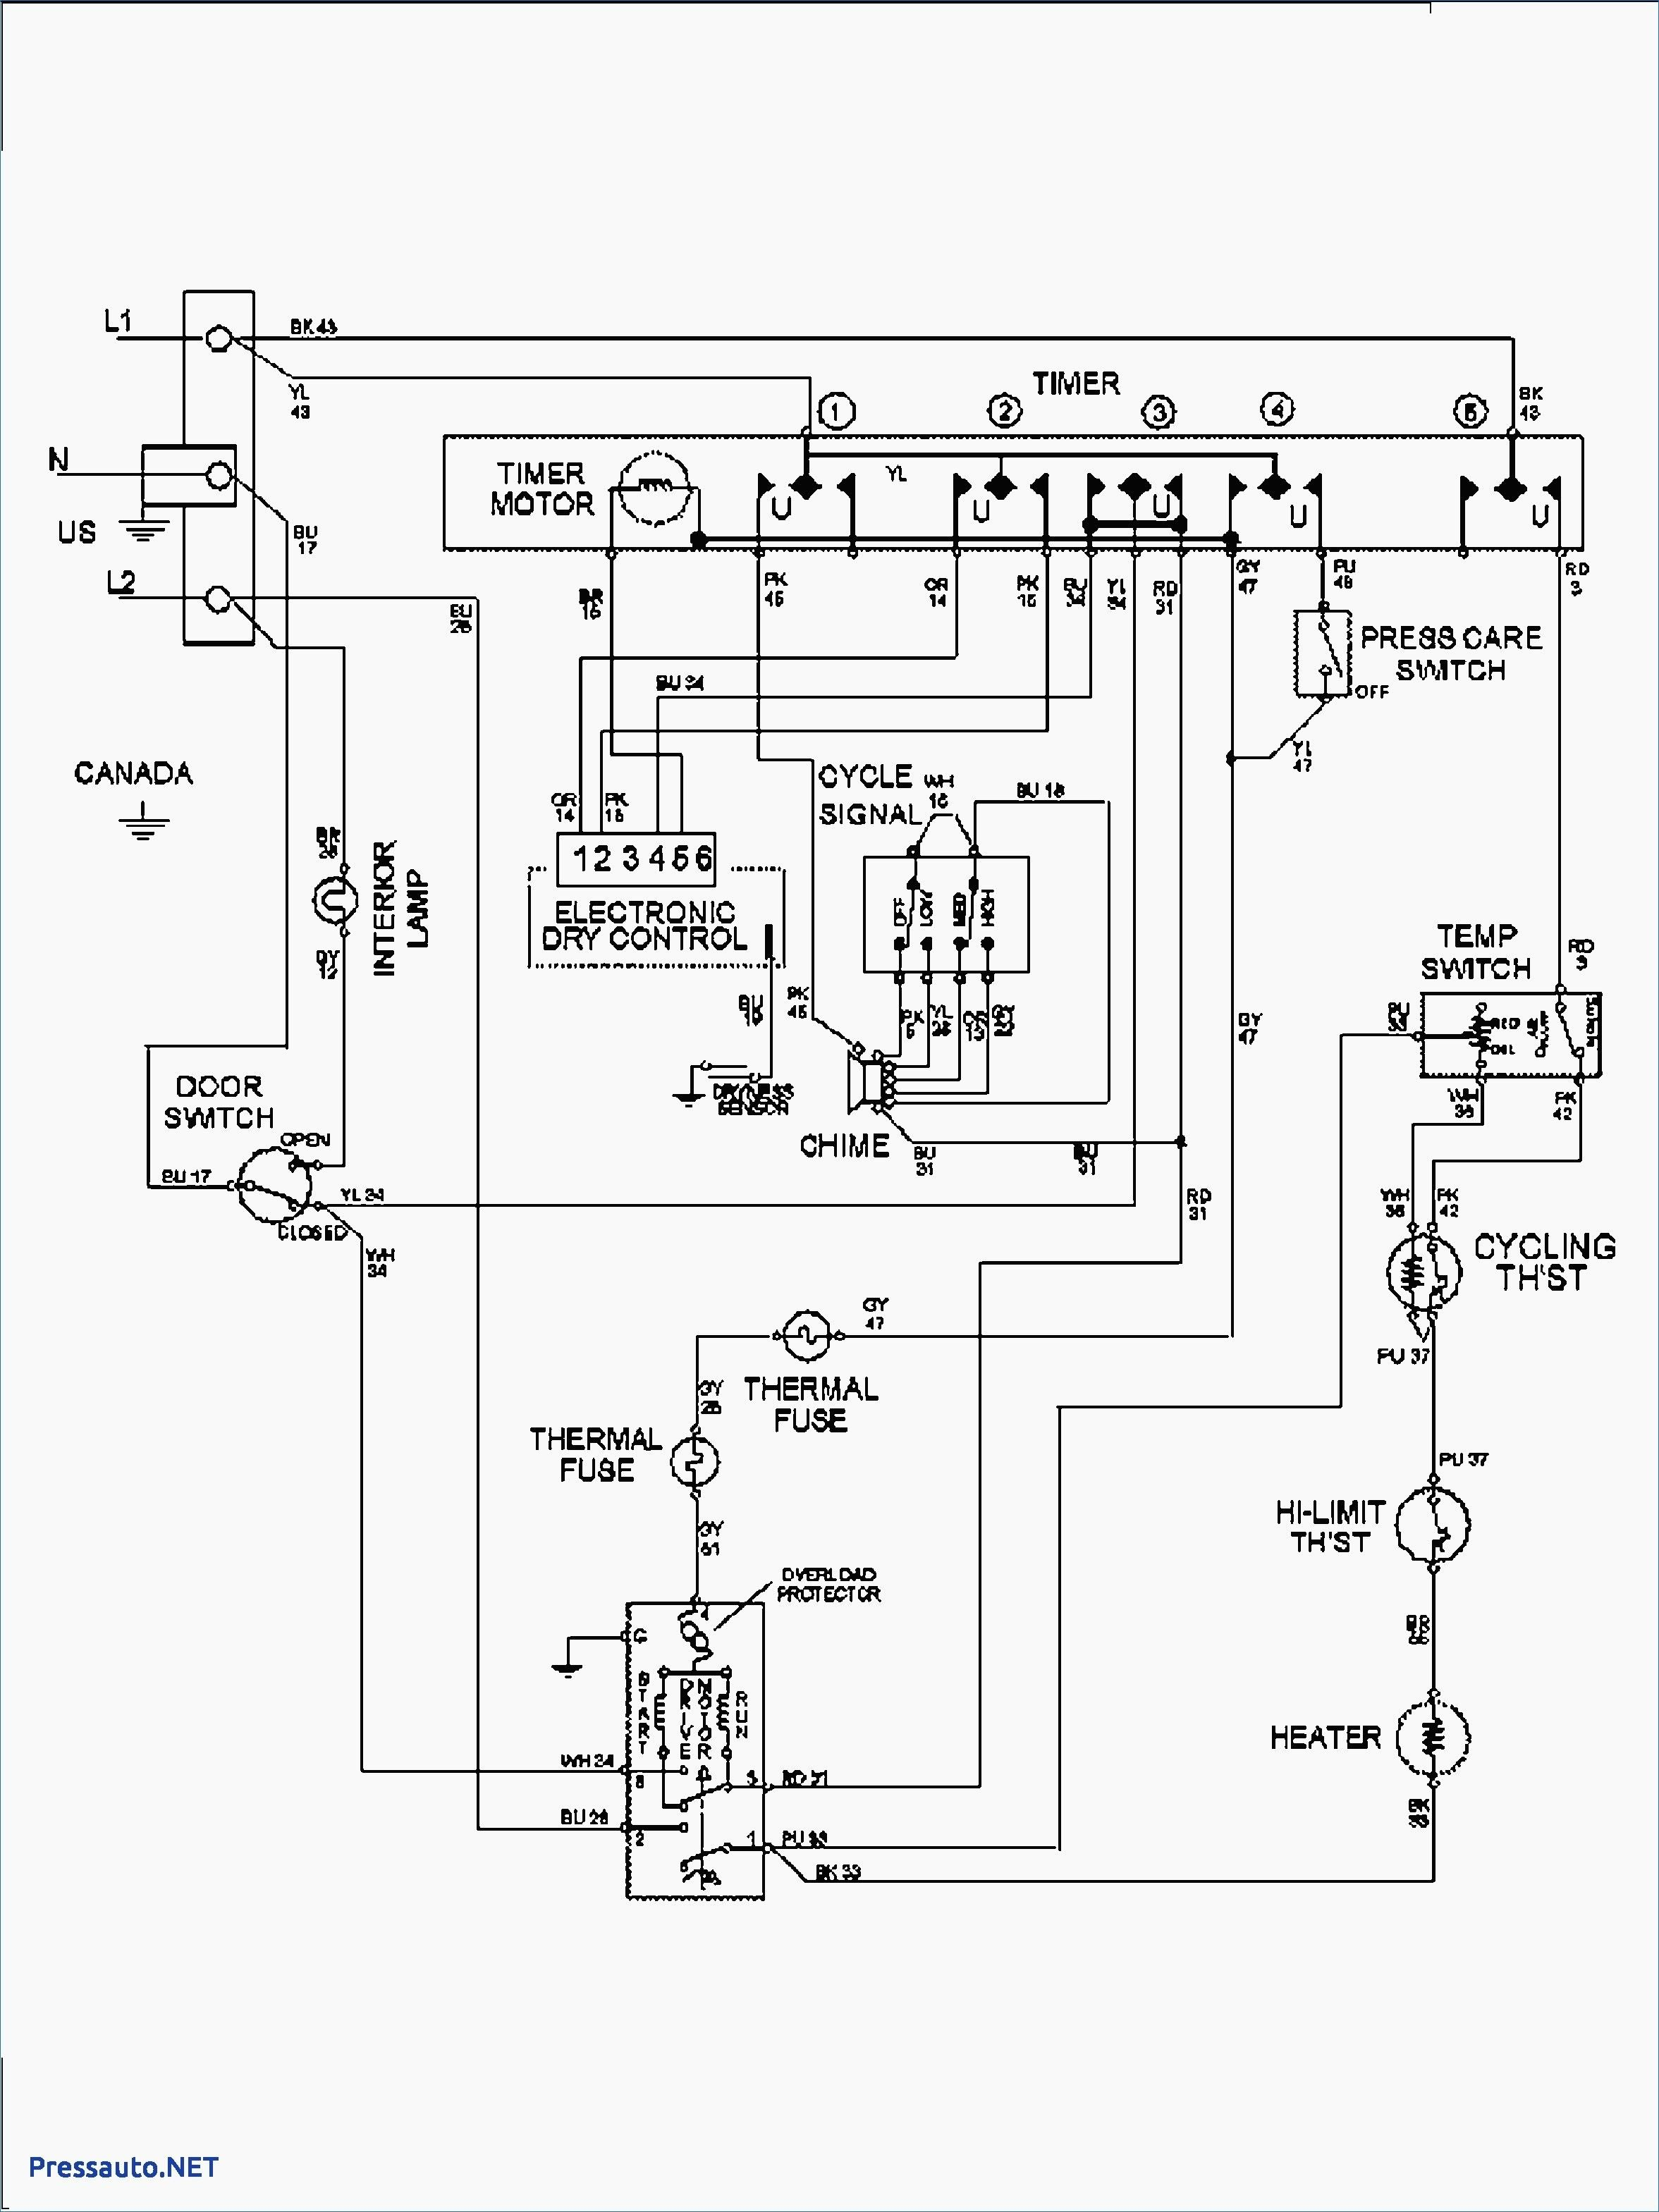 32++ Wire dryer diagram ideas in 2021